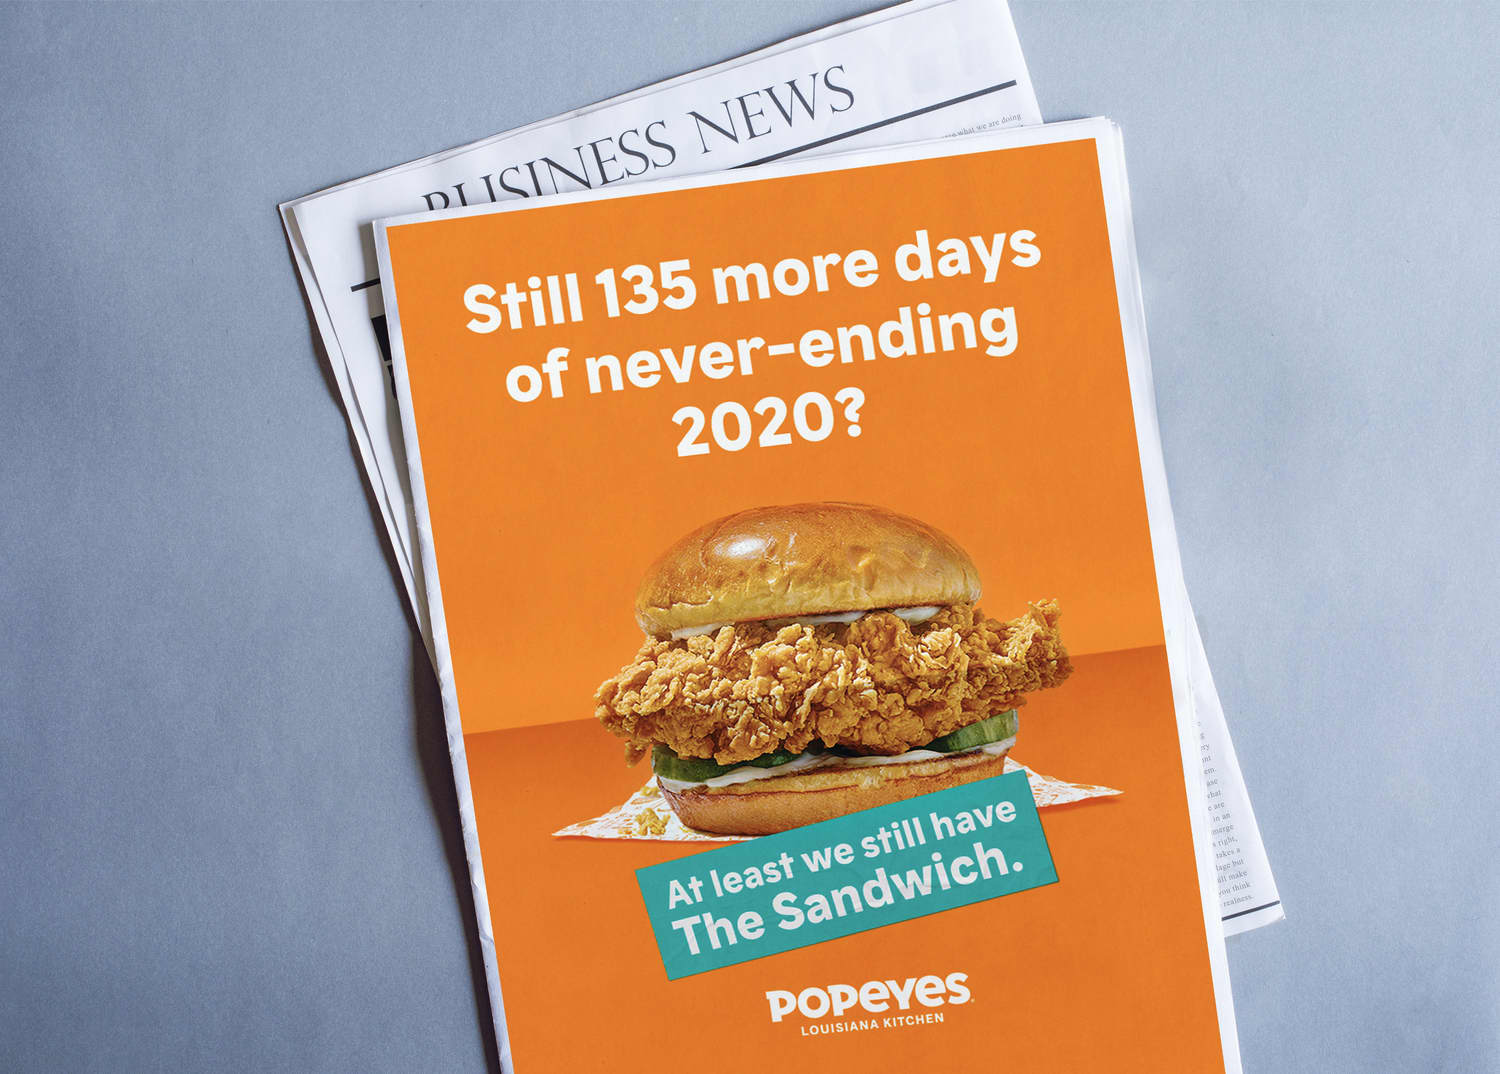 Popeyes: At Least We Still Have The Sandwich